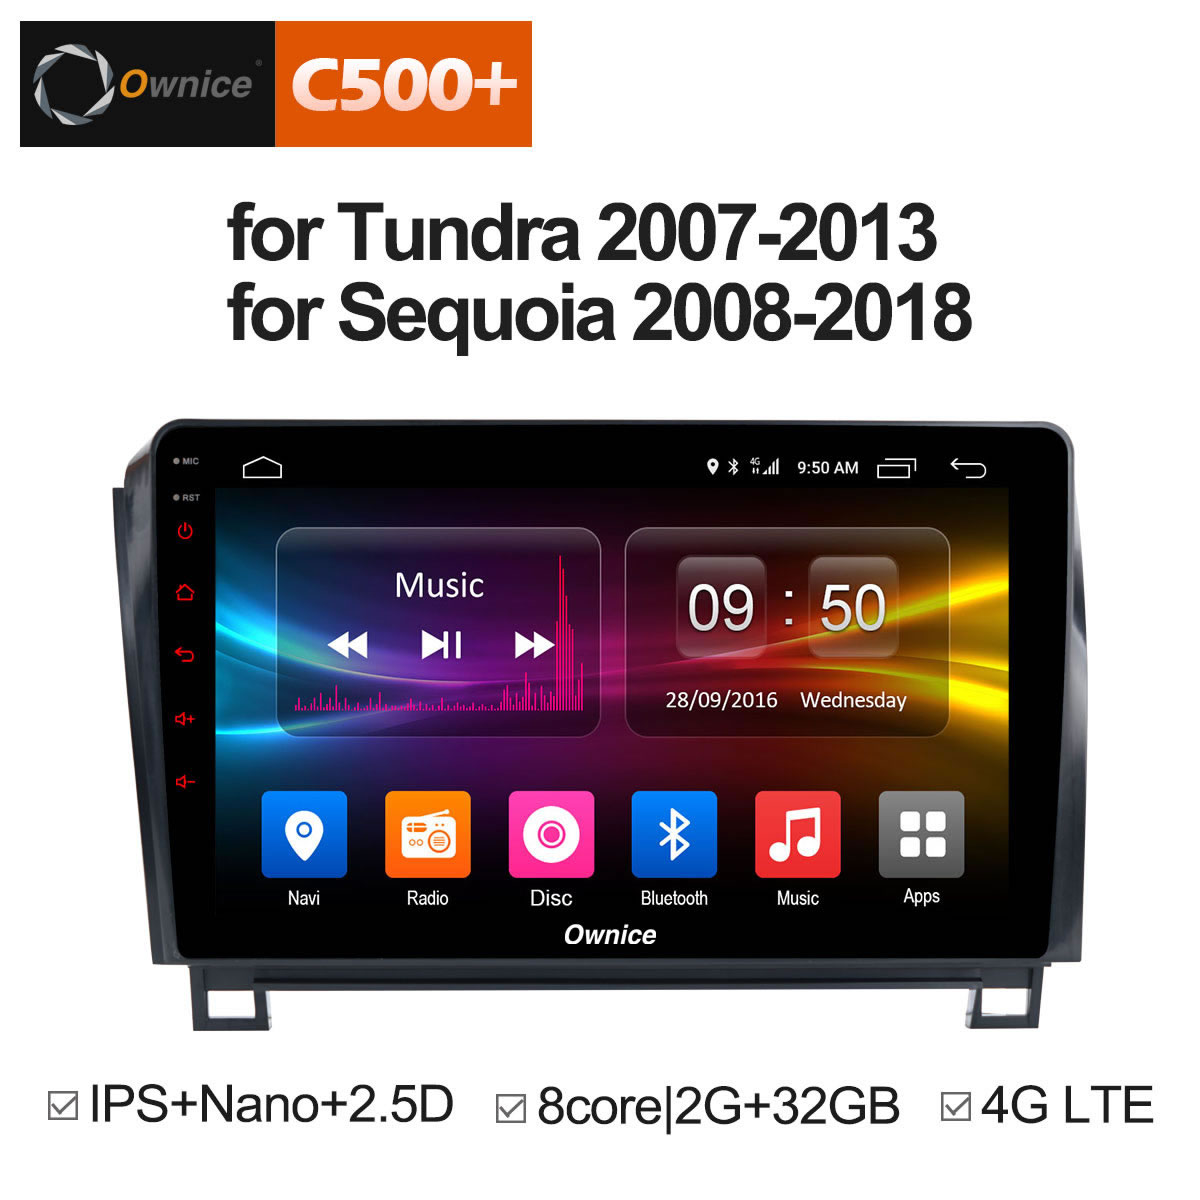 Ownice C500 + G10 Android 8,1 8 Core автомобильный DVD gps для Toyota Tundra 2007-2013 Sequoia 2008-2018 стерео радио аудио 4G БД DVR